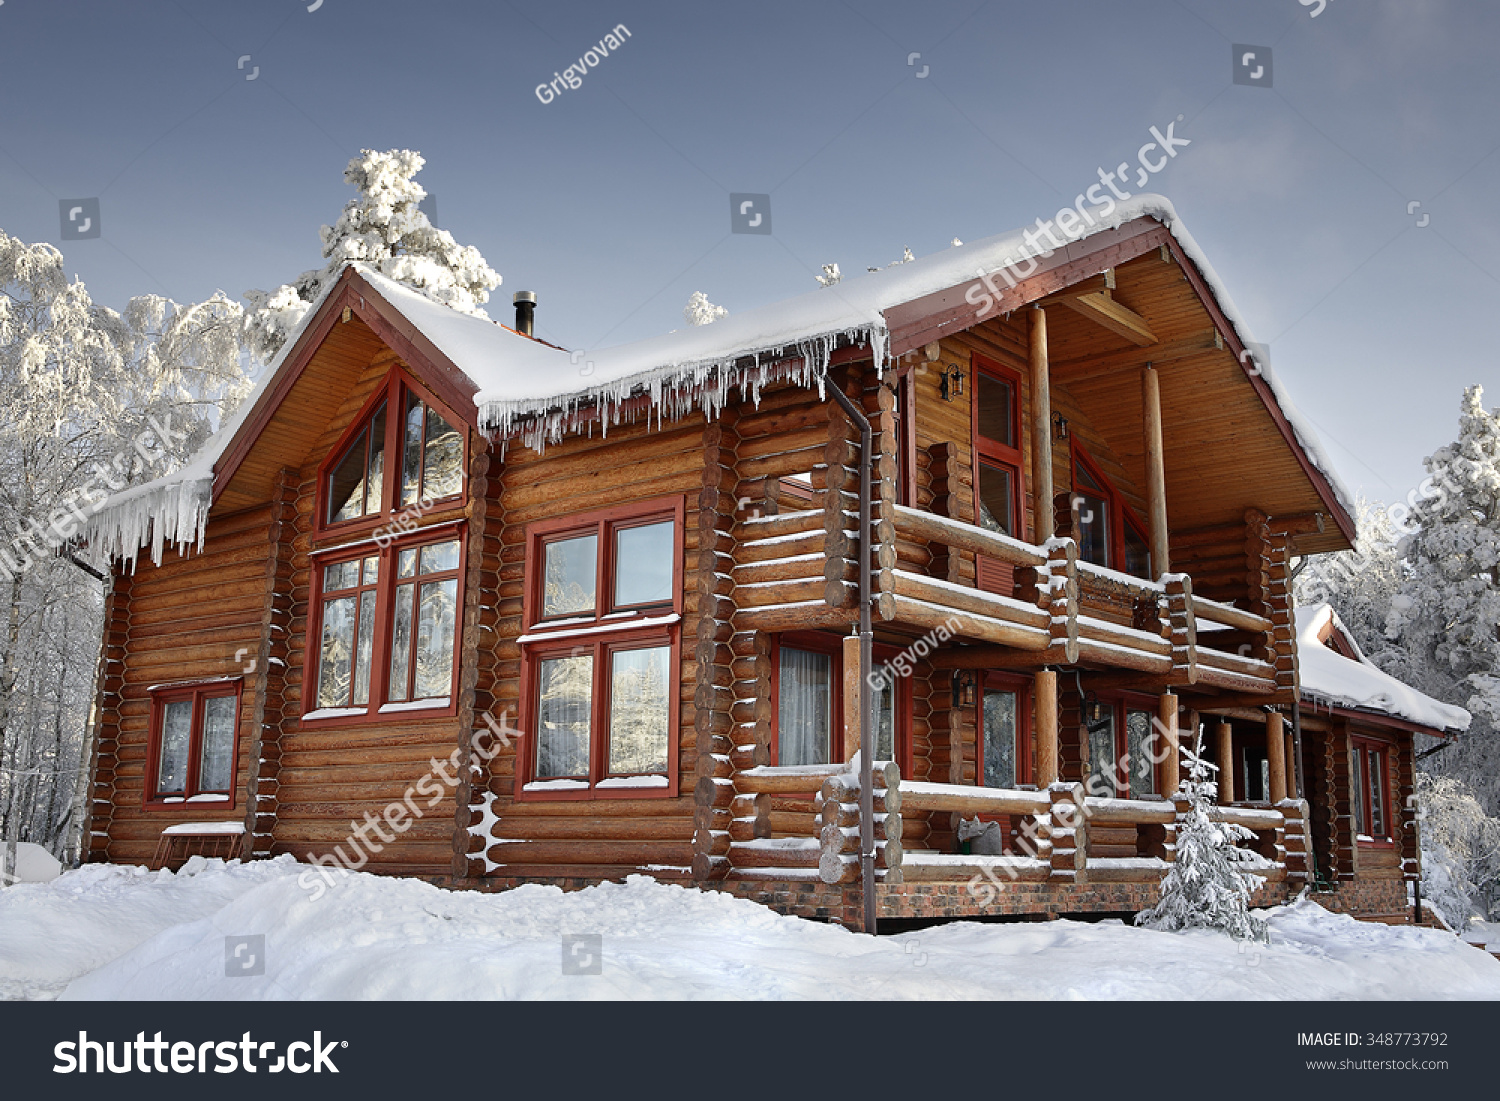 Log cabin large windows balcony porch stock photo for Windows for log cabins